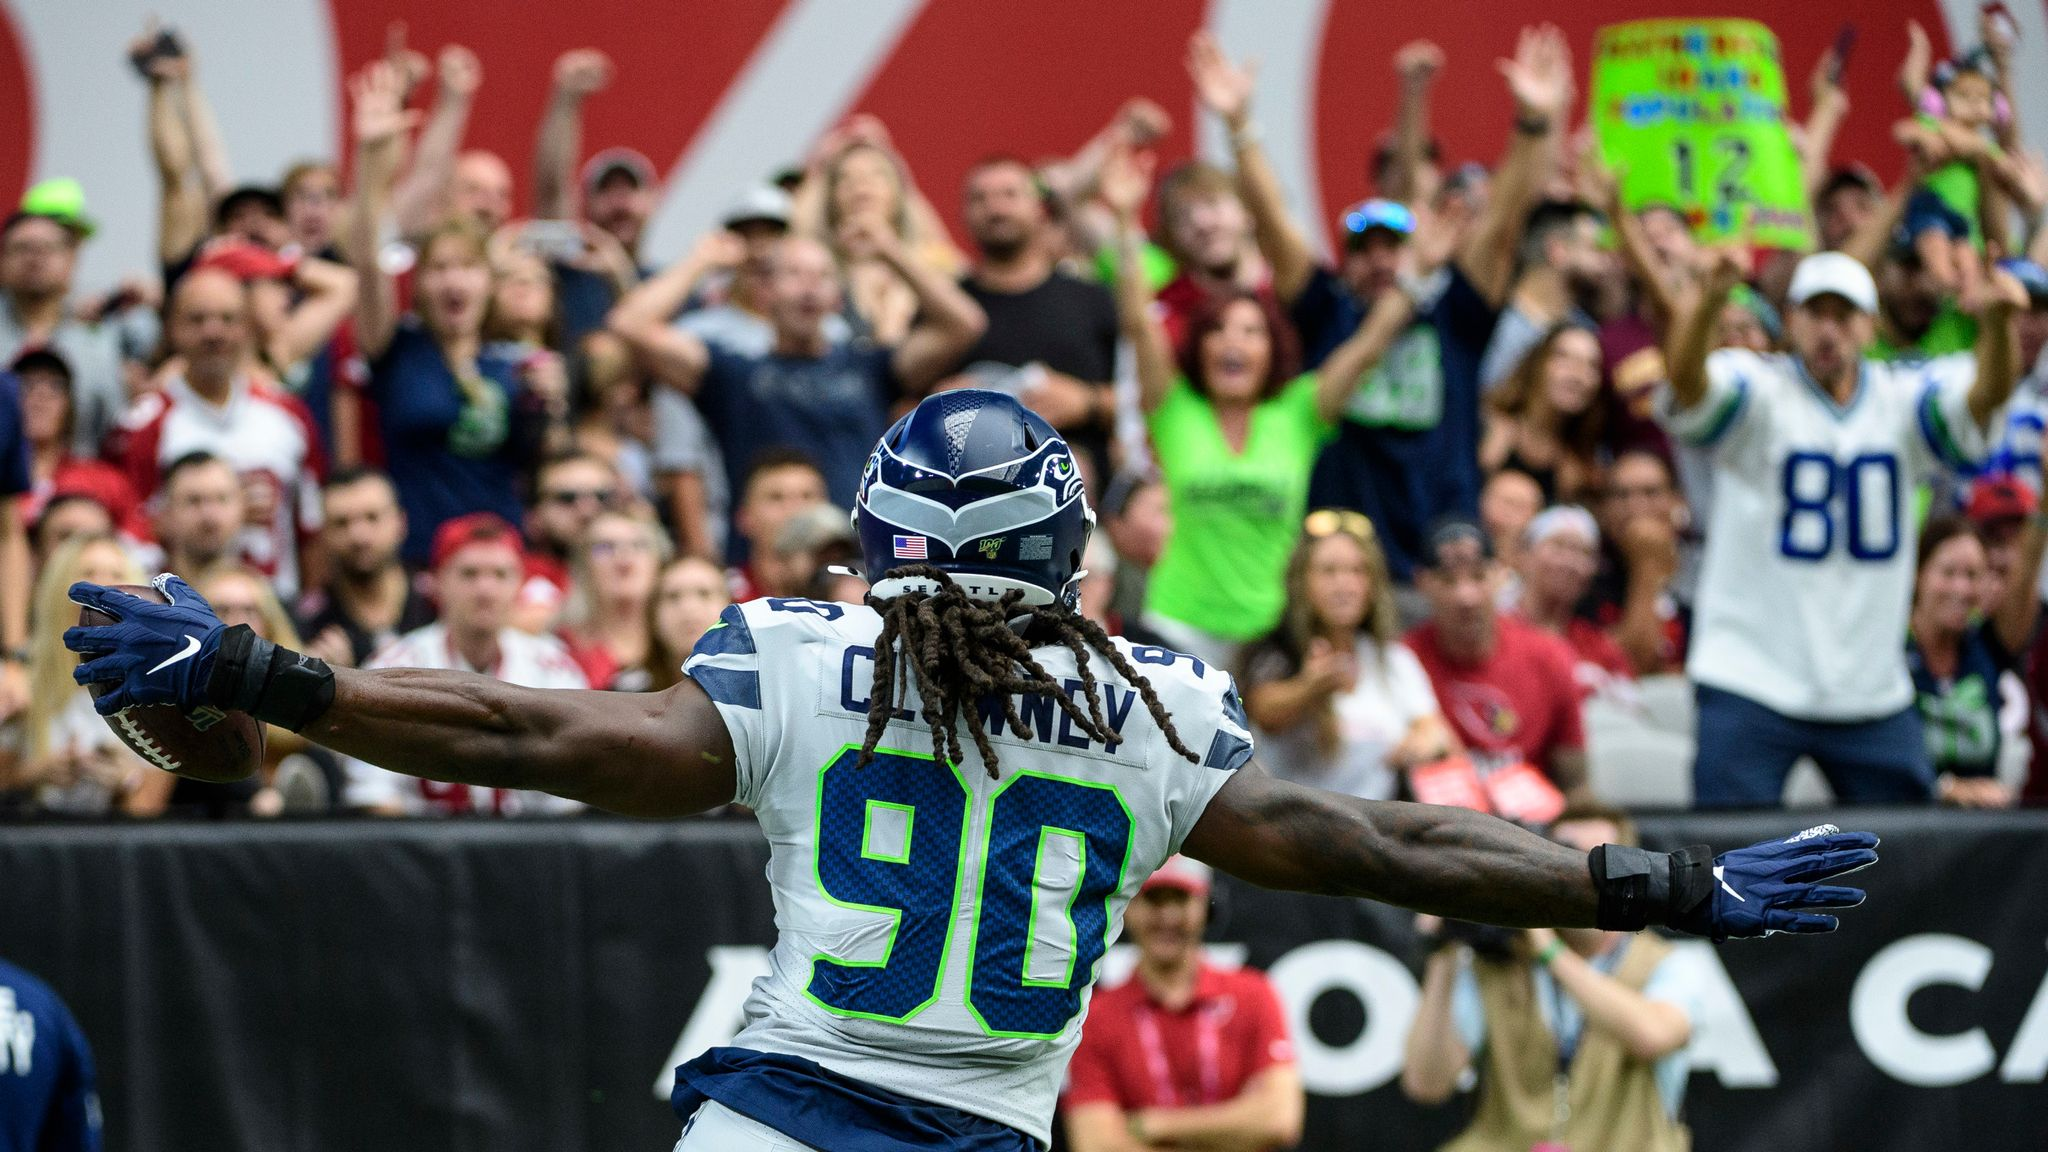 Los Angeles Rams @ Seattle Seahawks: Who will come out on top in NFC West rivalry match-up?